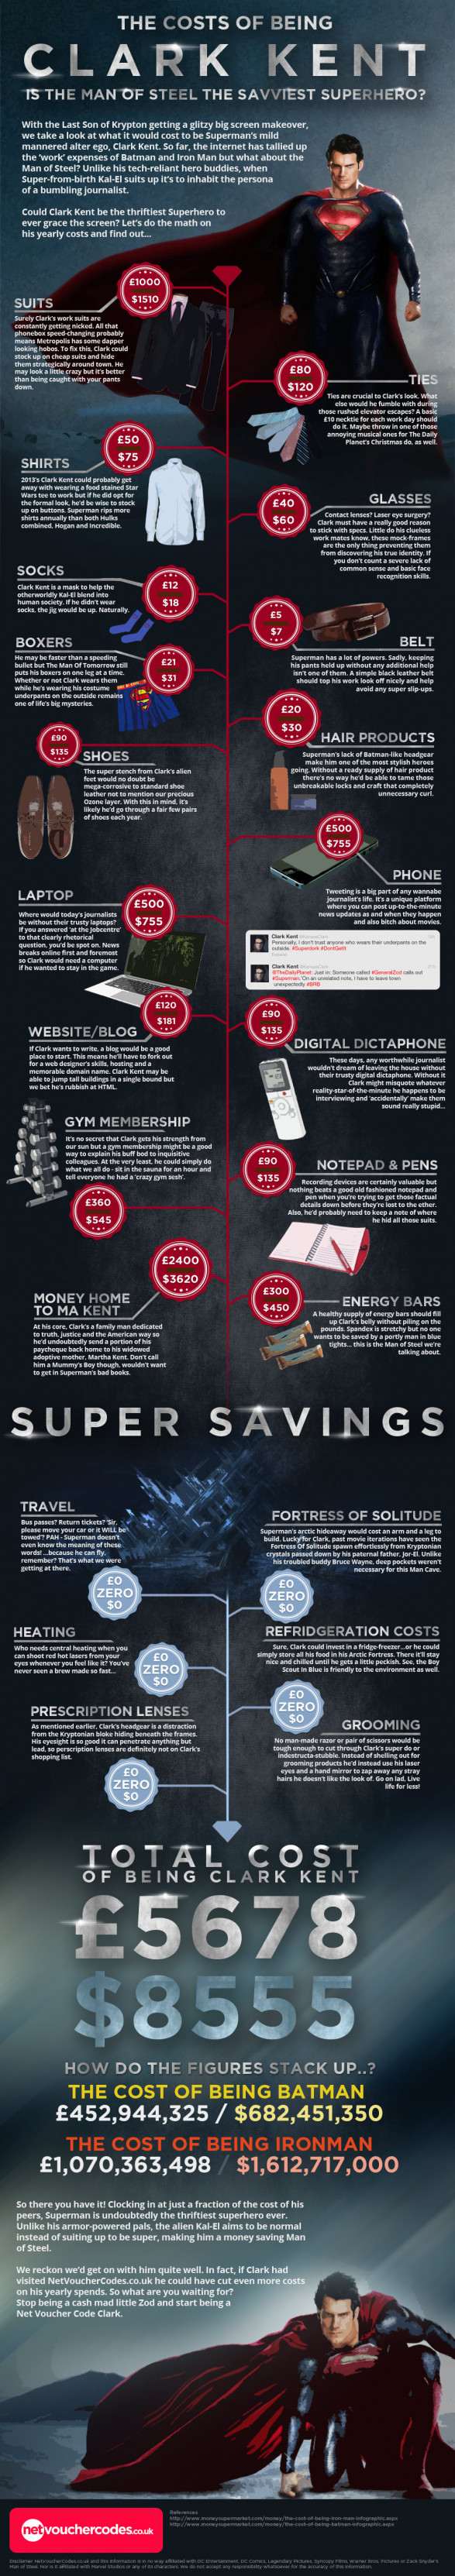 The Costs of Being Clark Kent